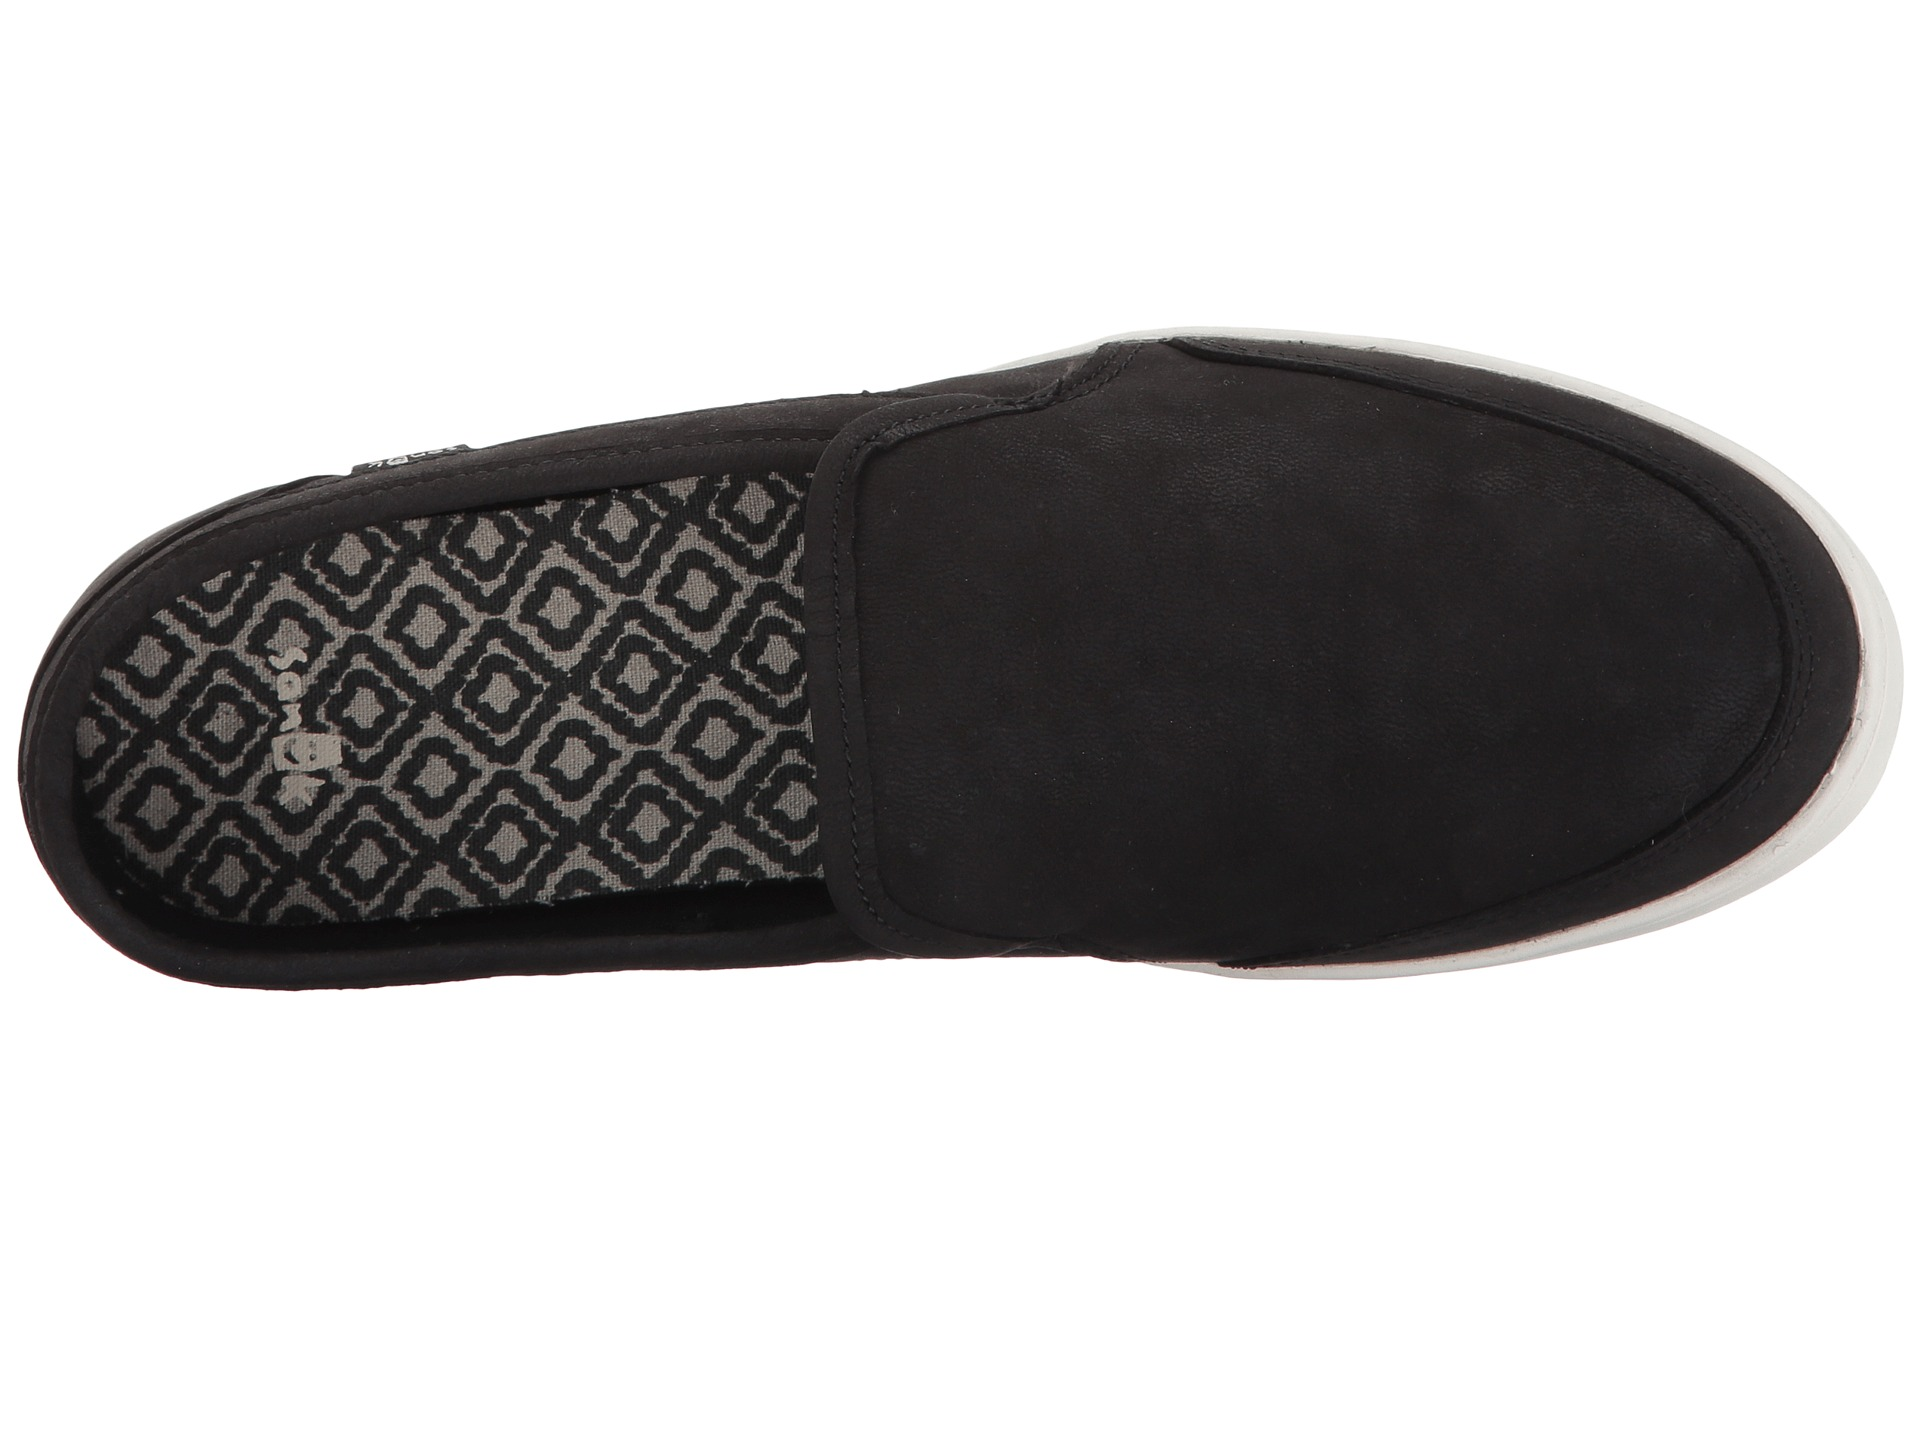 Sanuk Pair O Dice Leather Slip On Shoes Reviews